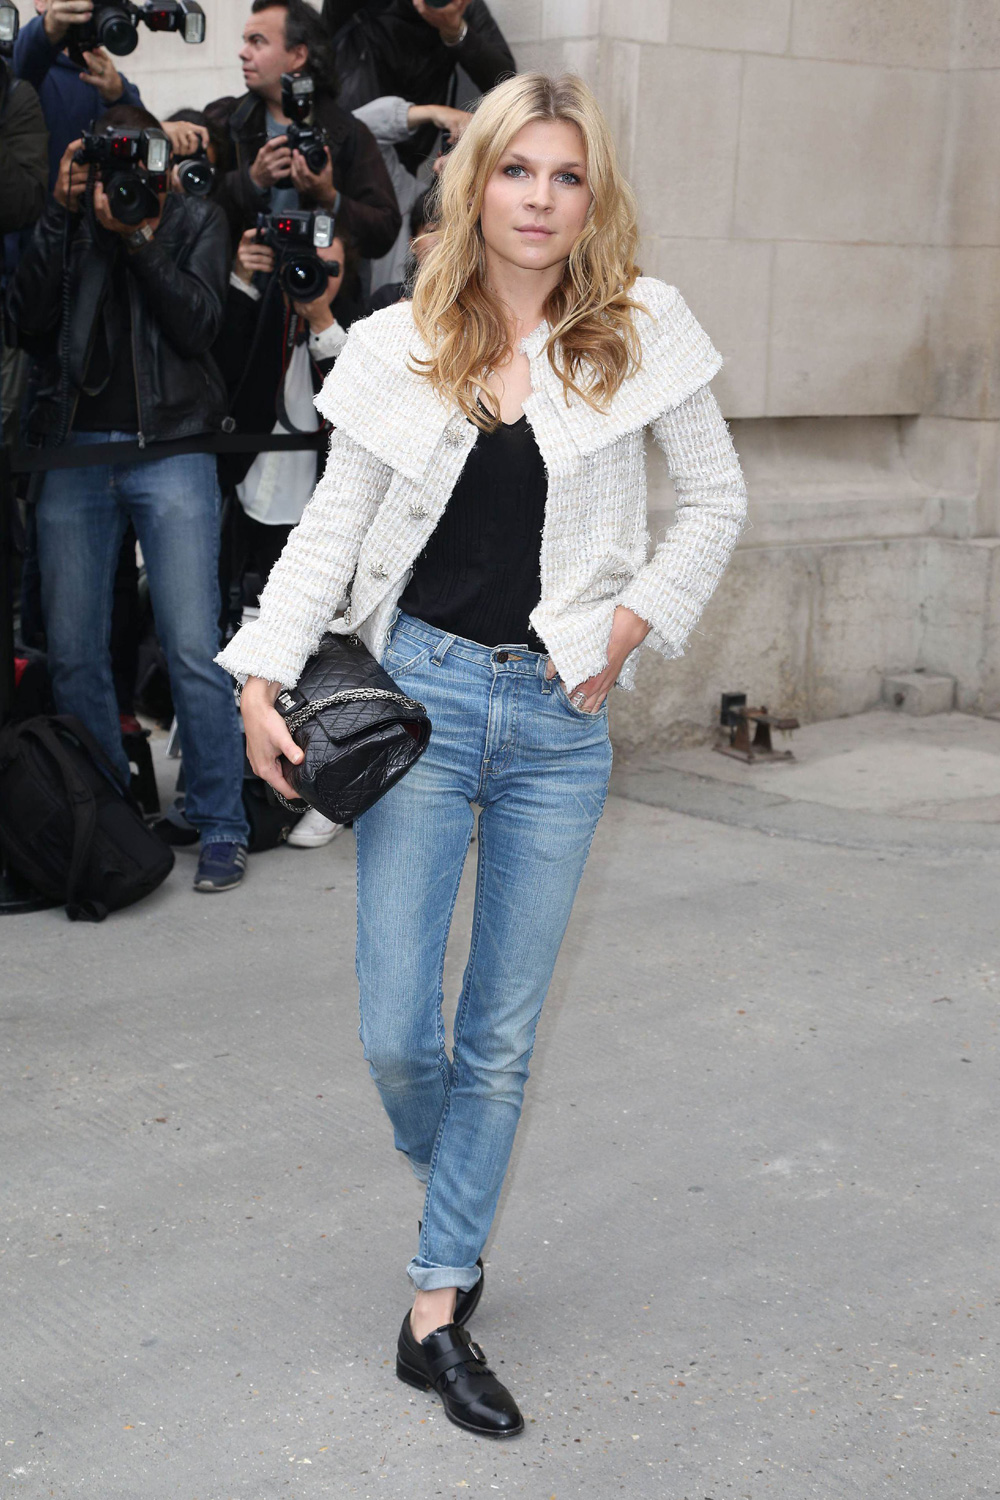 French IT Girl Style: 20 Style Rules From The Best Dressed French Icons